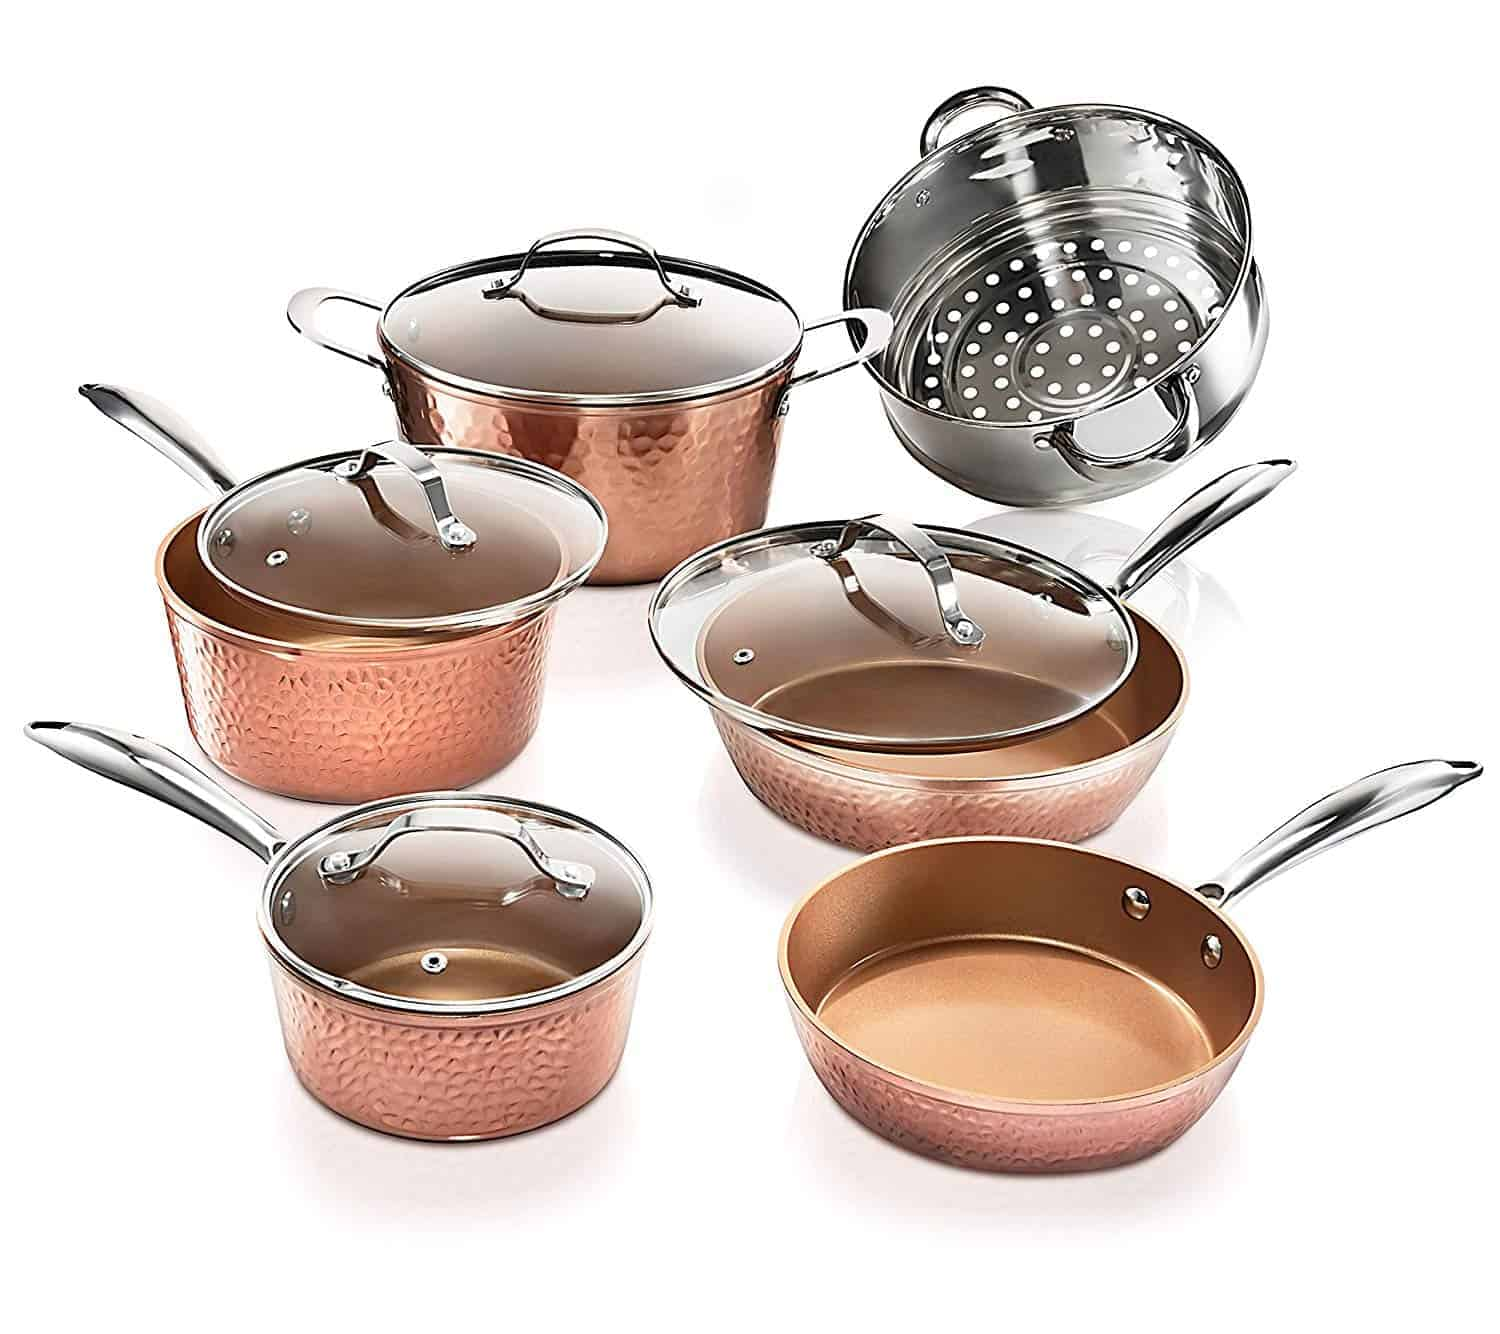 Best budget hammered copper look: Gotham Steel Hammered Collection